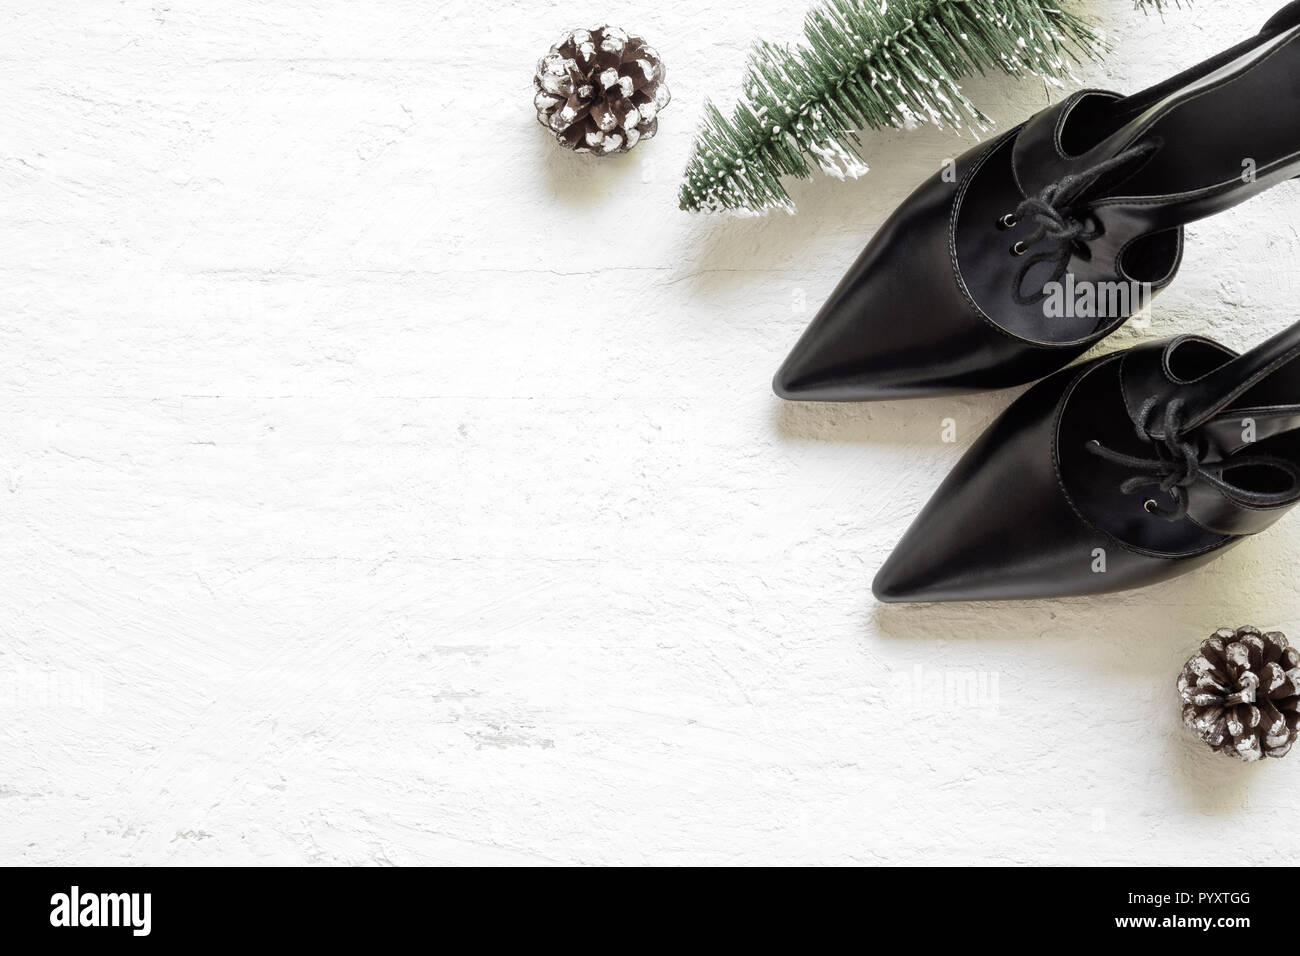 Flat Lay Black High Heel Shoes And Mini Christmas Tree And Pine Cones On Grunge White Wood Background Merry Christmas And Winter Season Fashion Backg Stock Photo Alamy